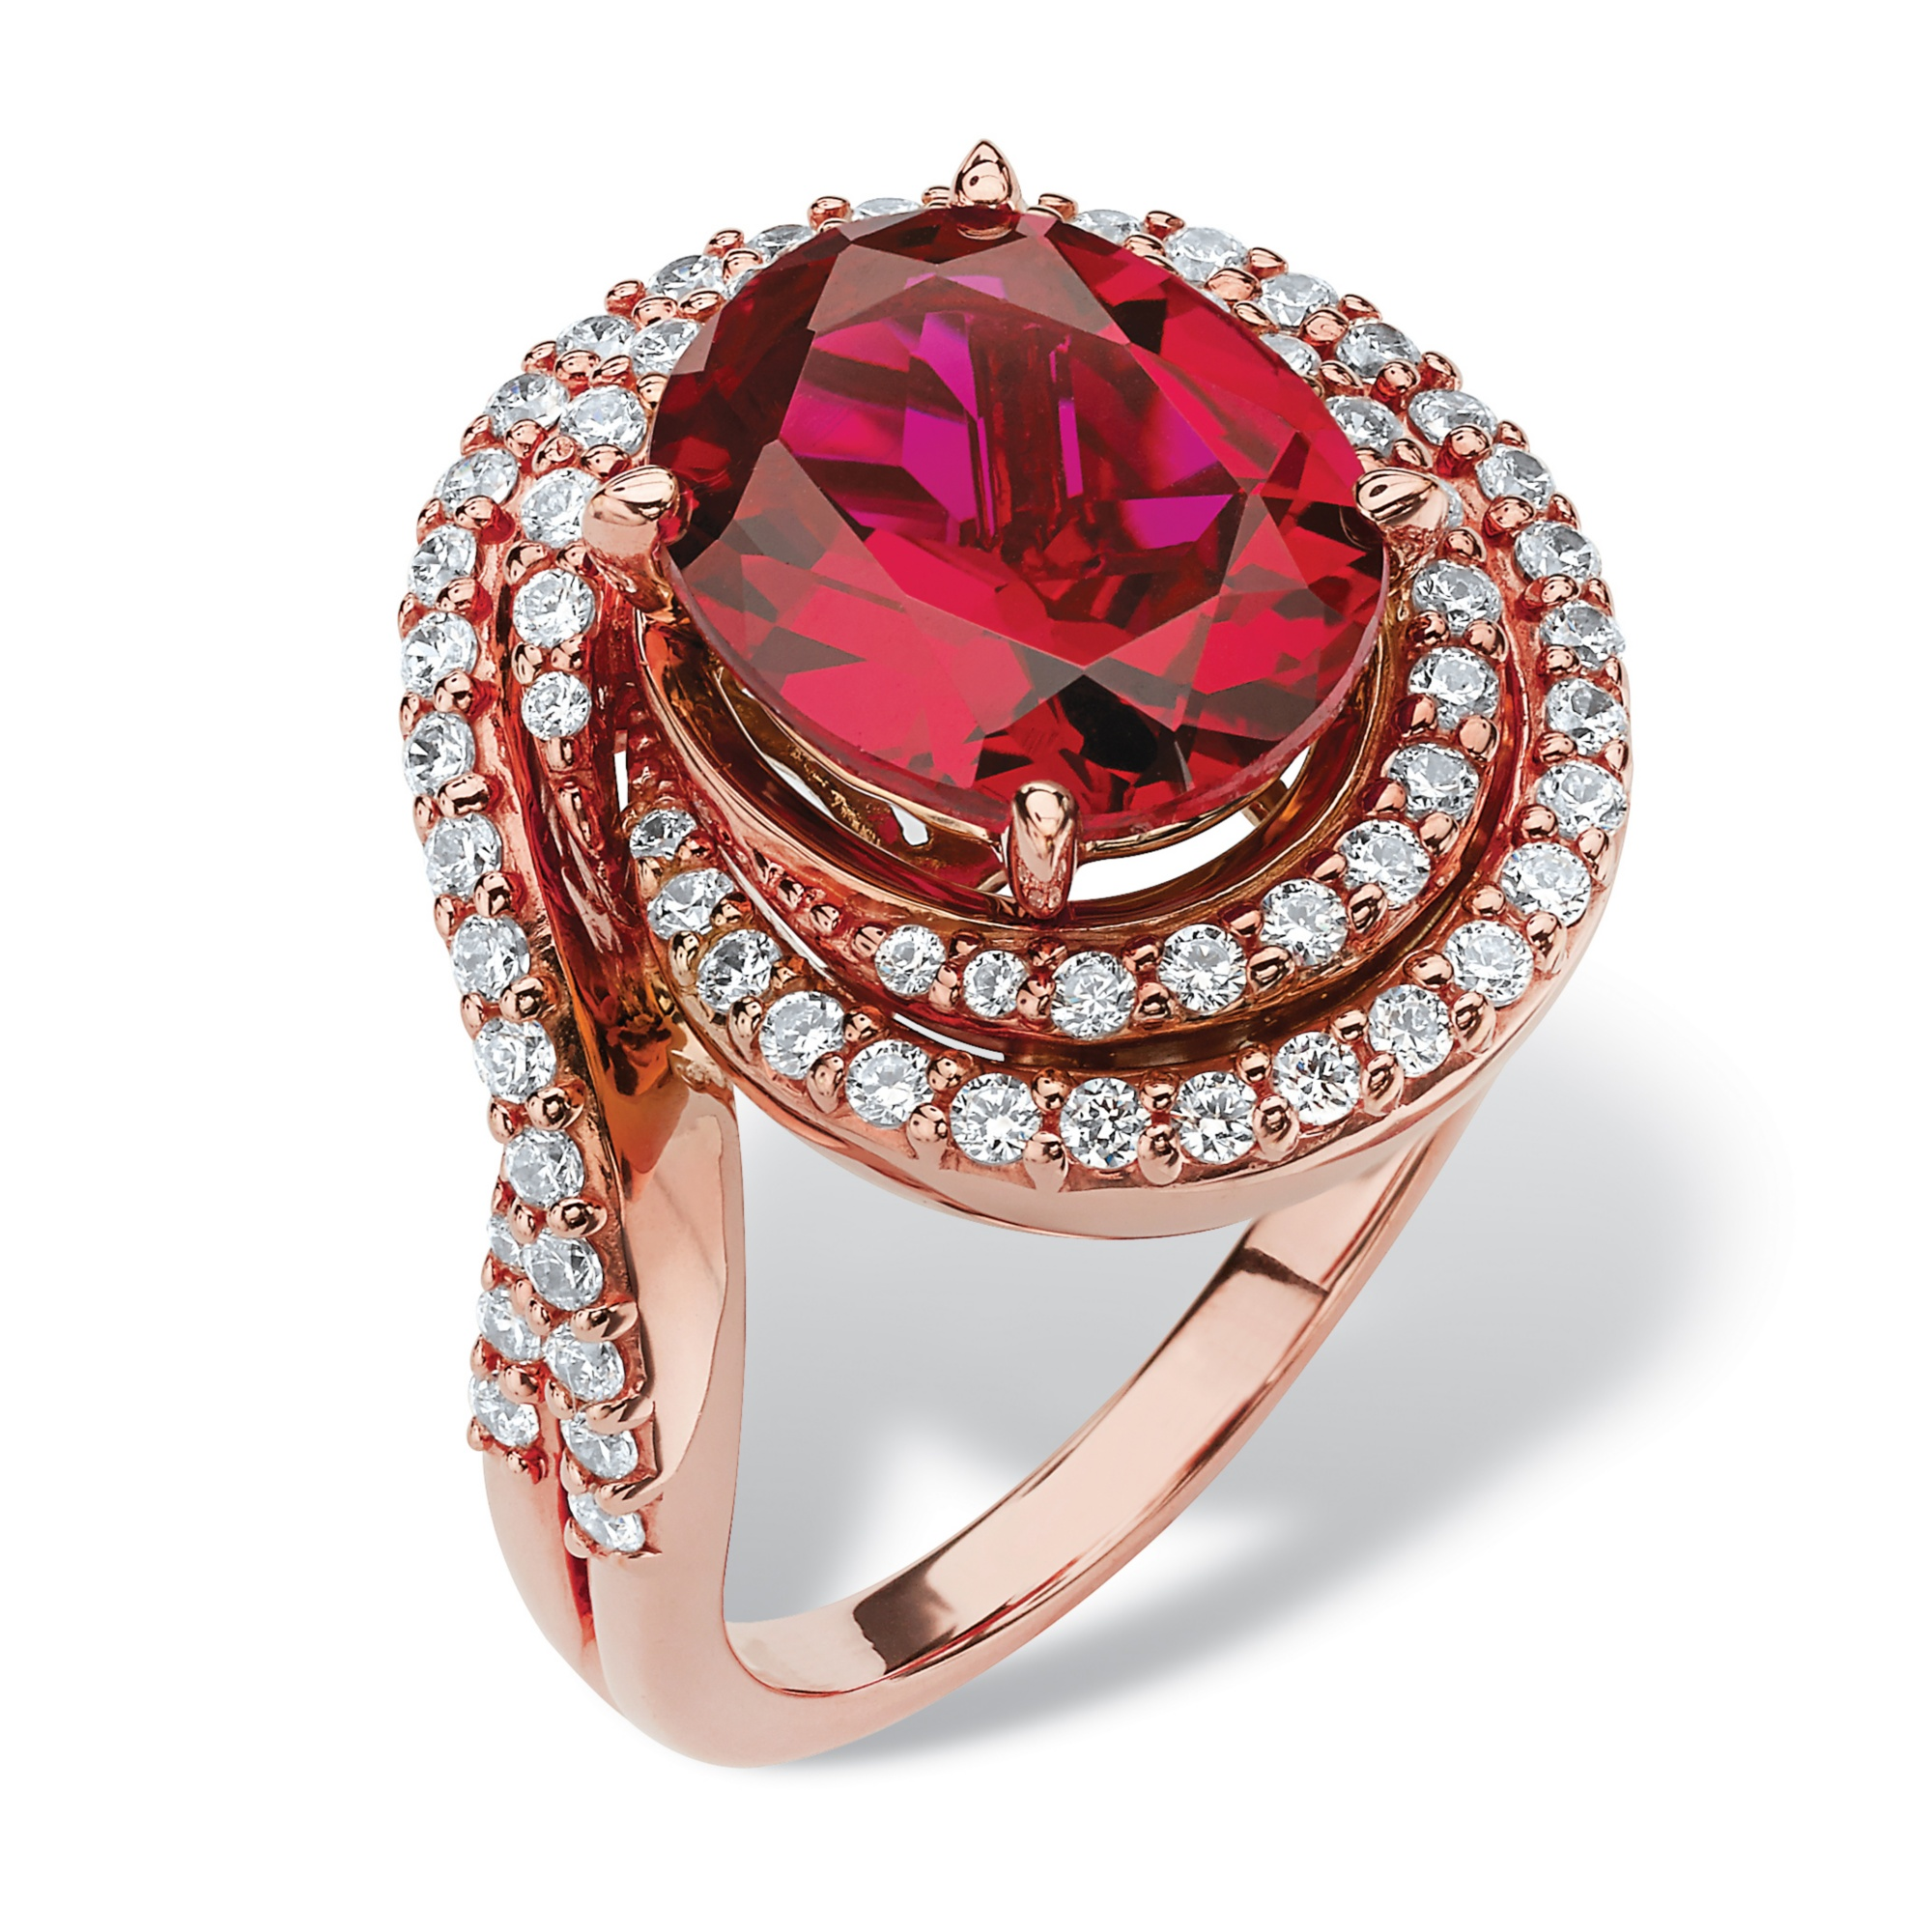 446 tcw ovalcut ruby and cubic zirconia swirl ring in